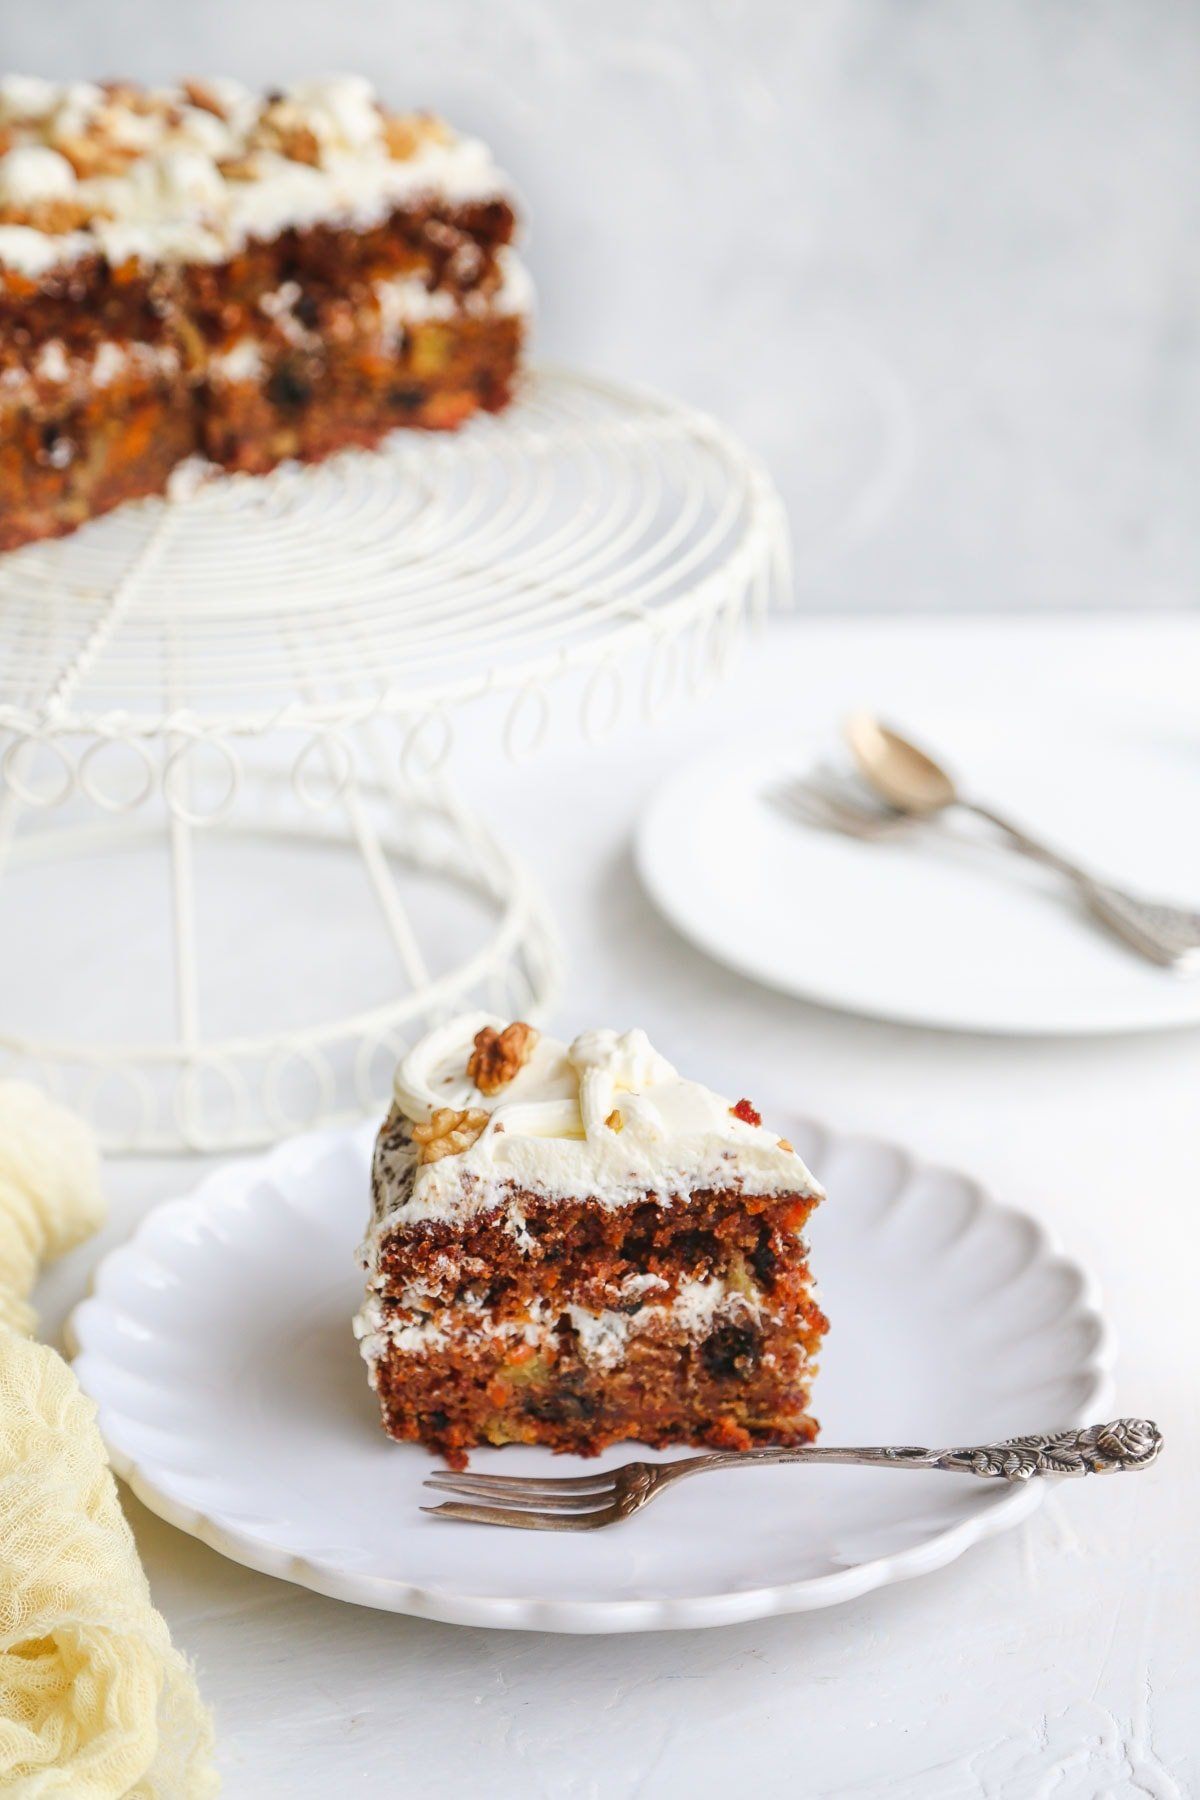 A slice of vegan carrot cake